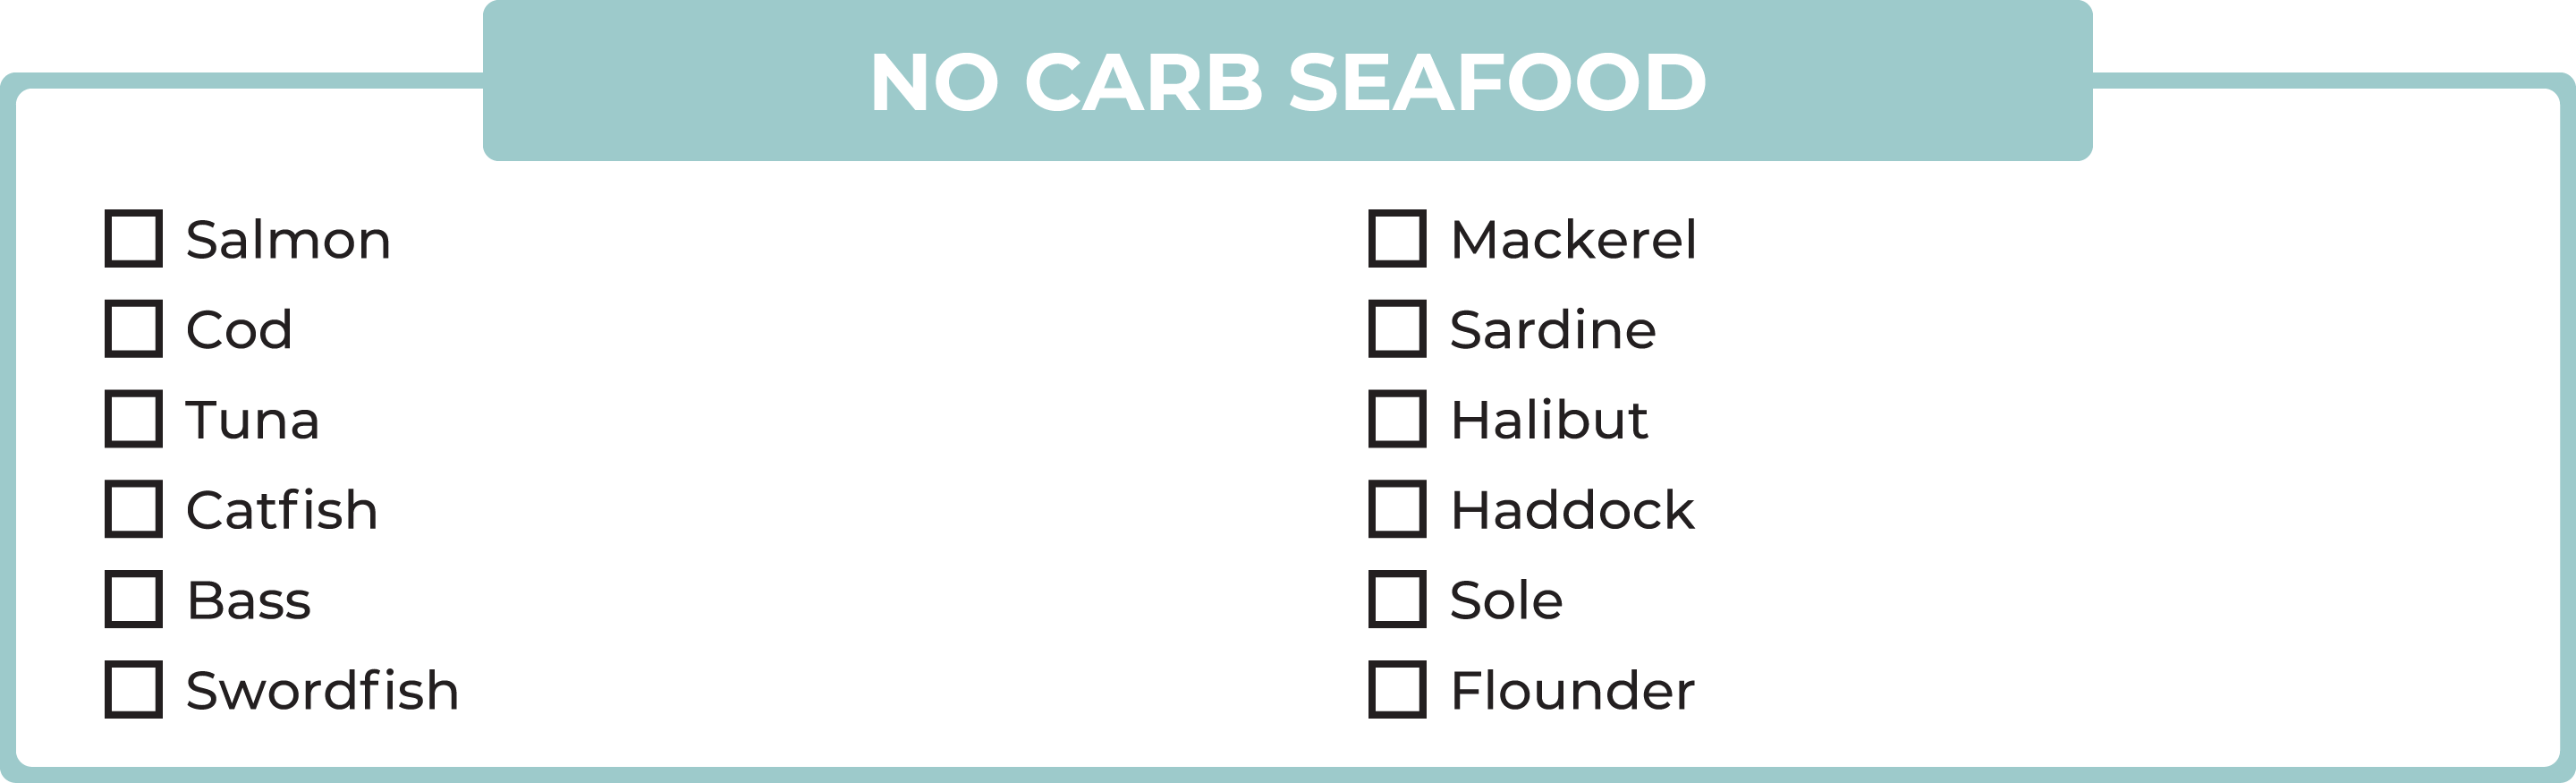 No carb seafood